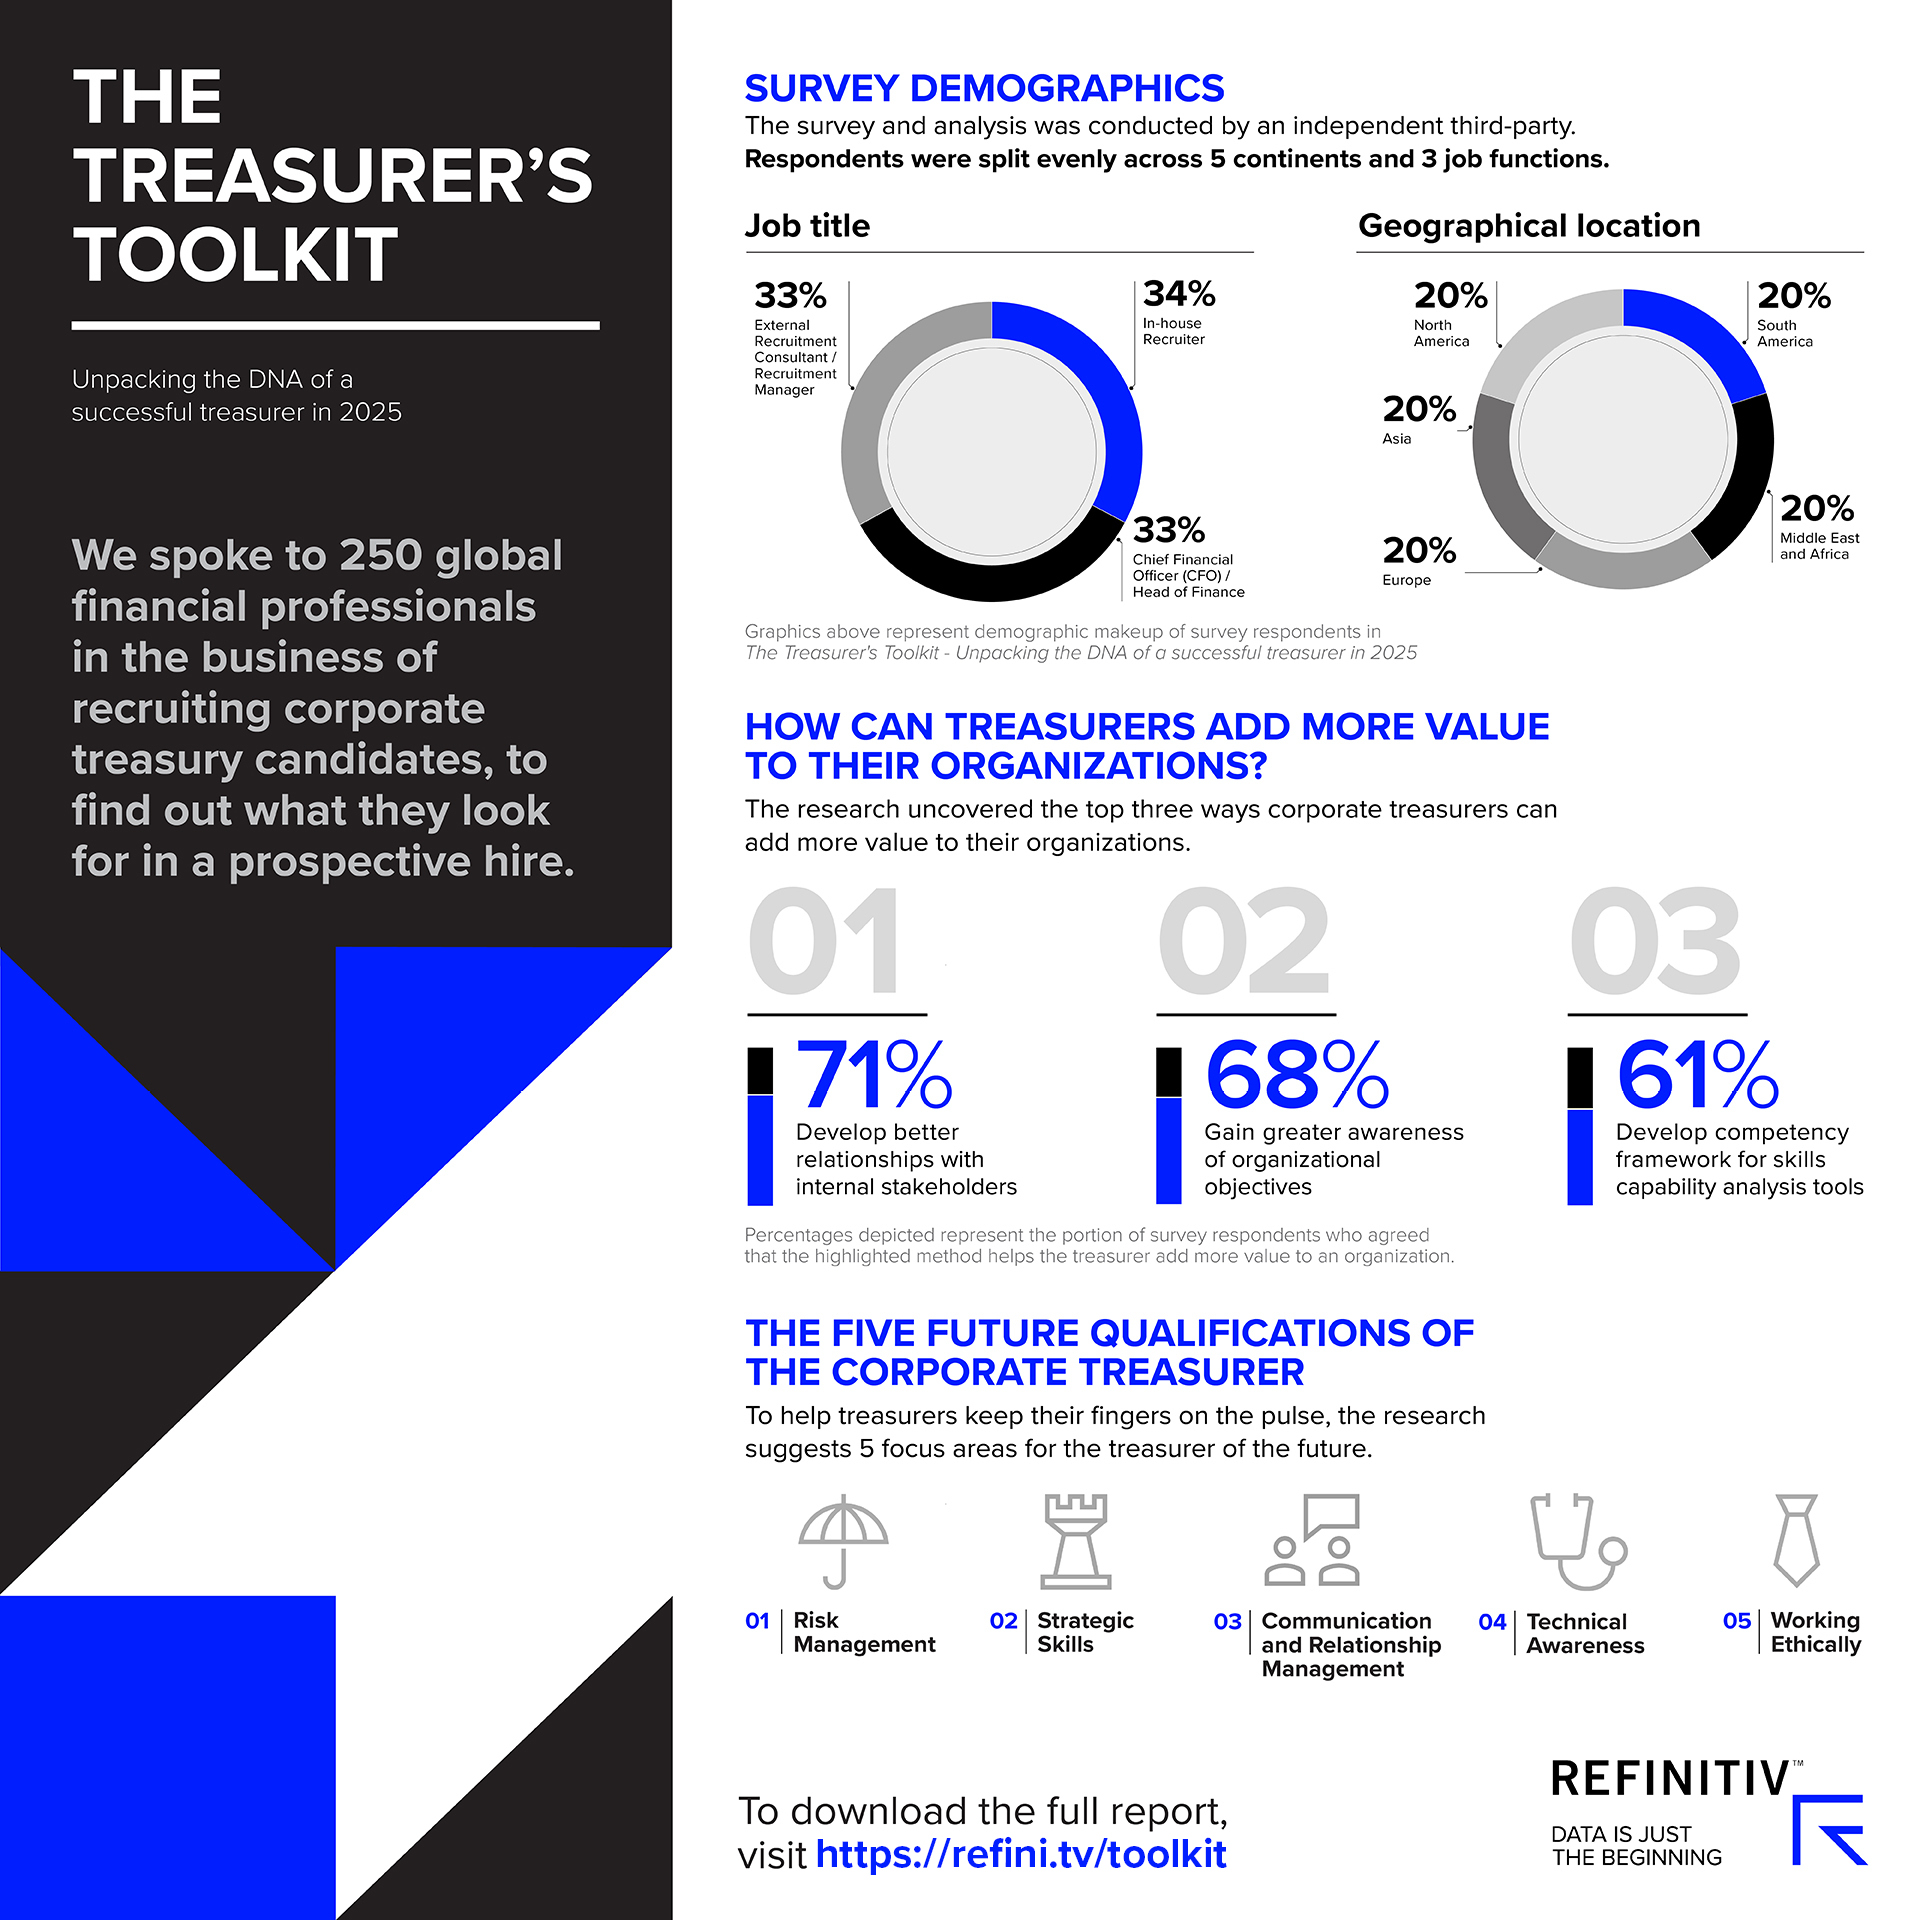 The tools and skills every corporate treasurer needs. The tools and skills every corporate treasurer needs